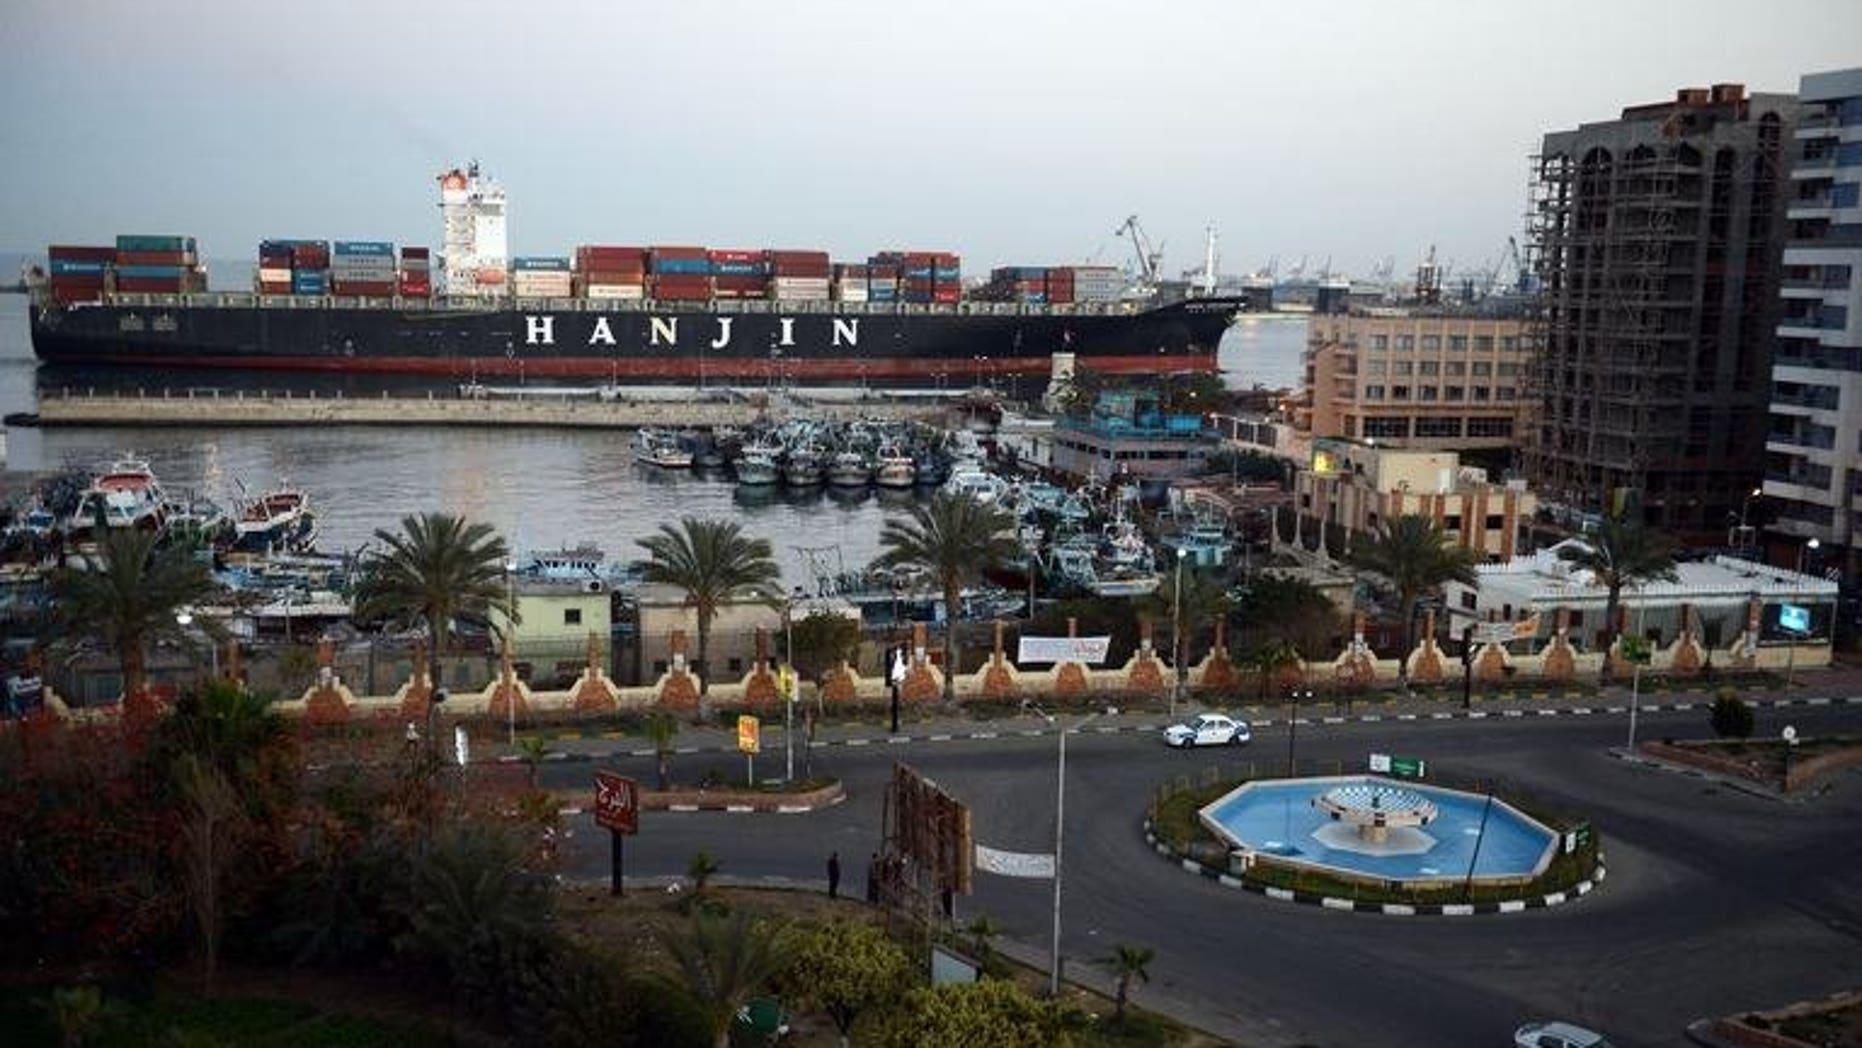 This file photo shows a container ship passing through the Suez Canal city of Port Said, on March 9, 2013. Gas-rich Qatar has dispatched a second shipment of free liquefied gas it had pledged to Egypt, a report said, despite Doha's criticism of Cairo's deadly crackdown on Muslim Brotherhood protesters.